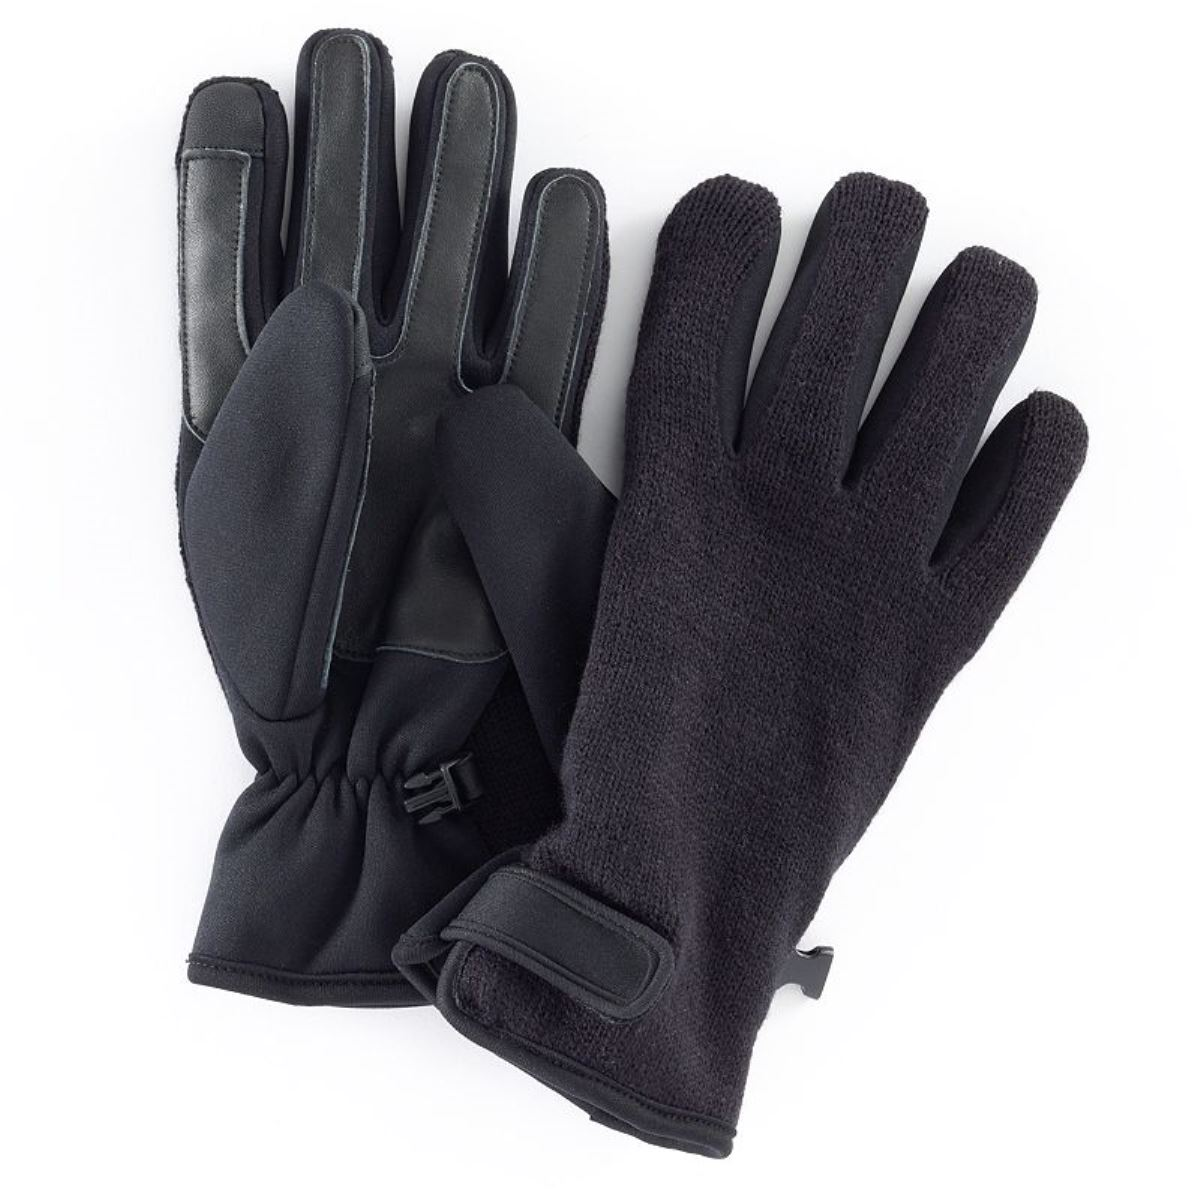 Apt. 9 Knit Fusion Texting Gloves Men Black